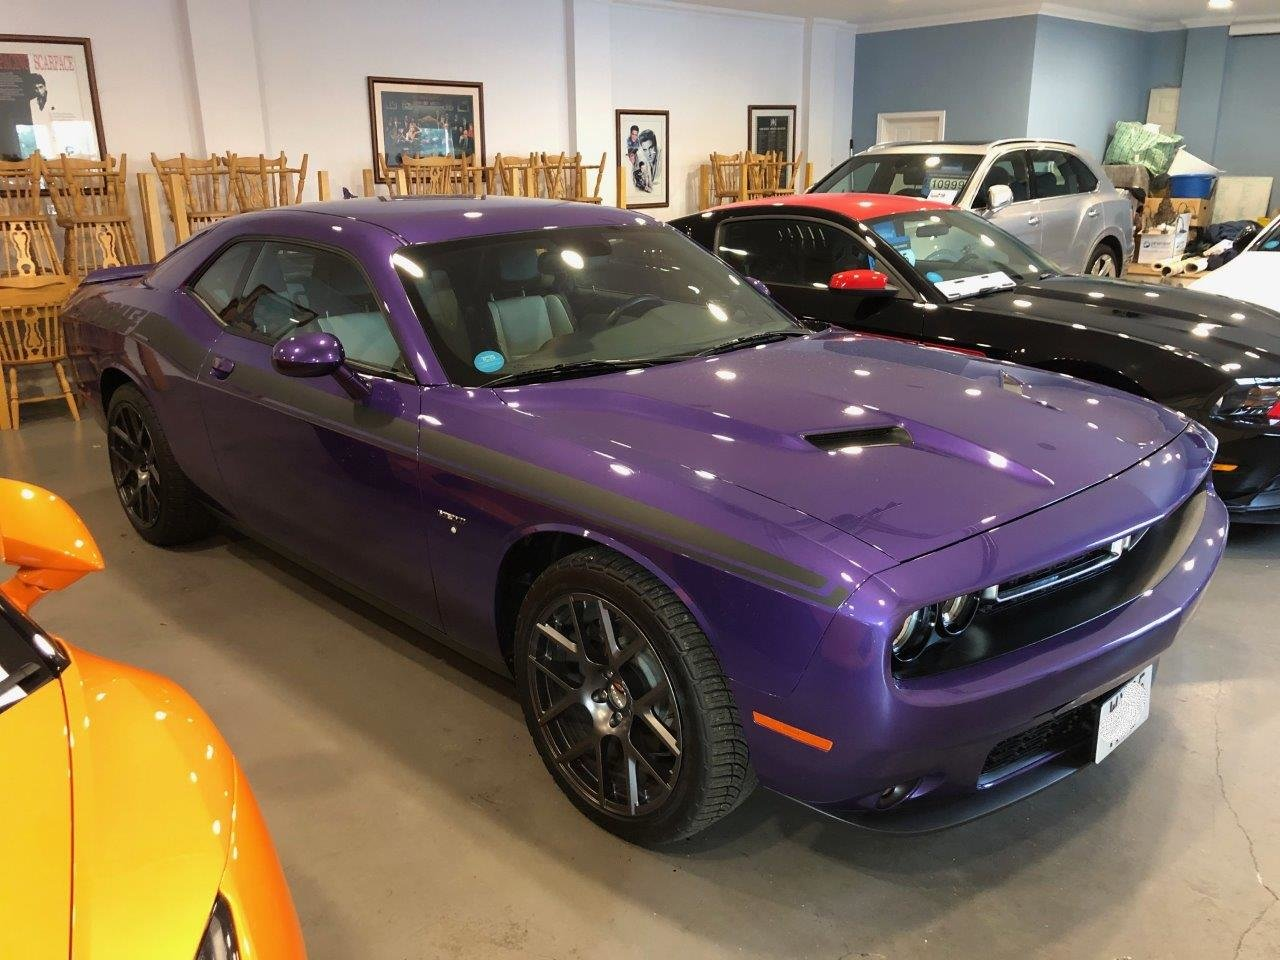 2016 Challenger R/T HEMI V8 in Plumb Crazy Purple For Sale (picture 1 of 6)